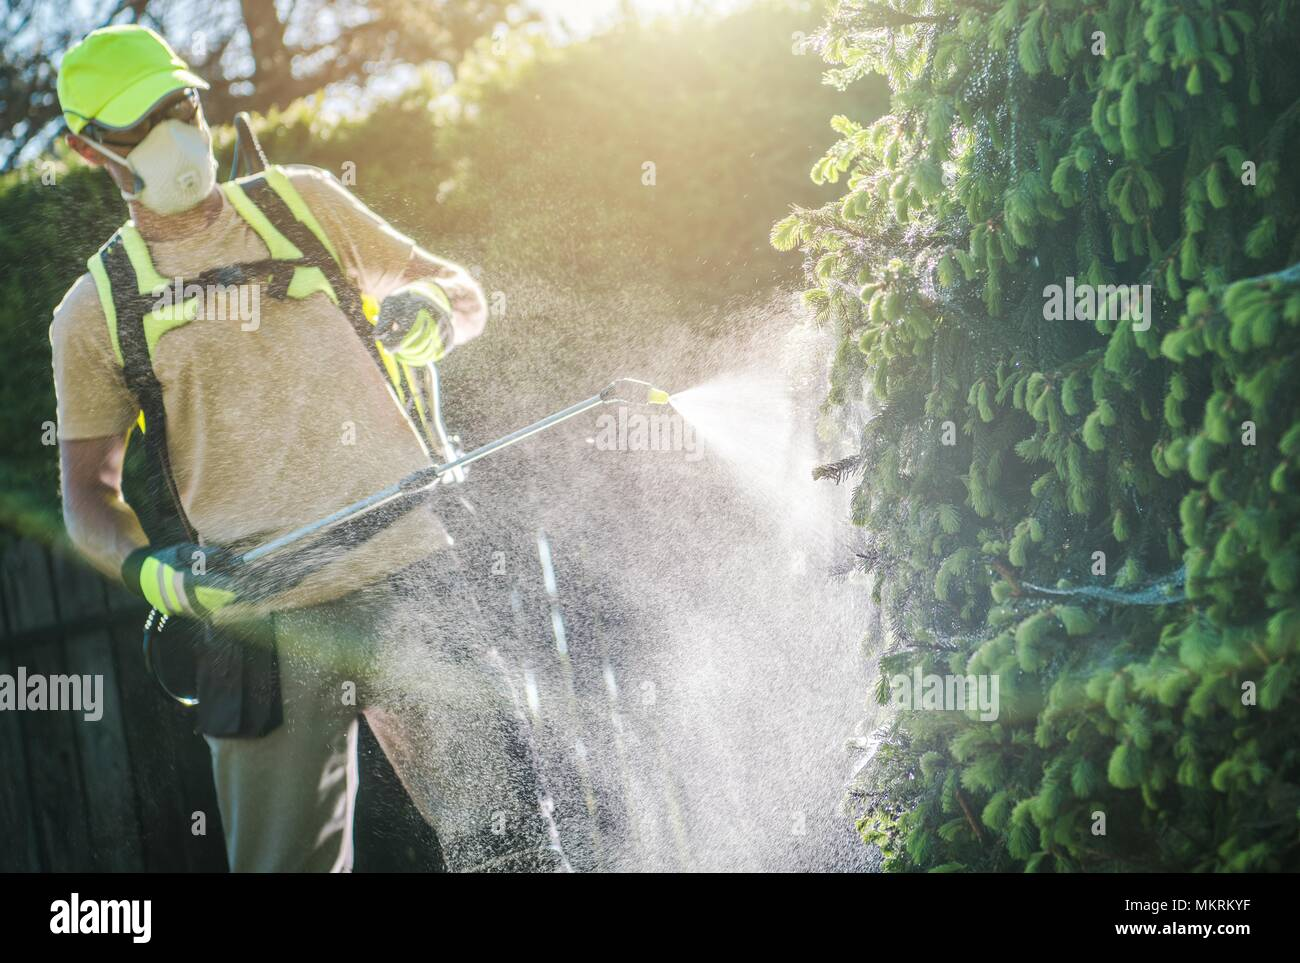 Pesticide Garden Plants Spraying with Professional Equipment by Caucasian Gardener in His 30s - Stock Image